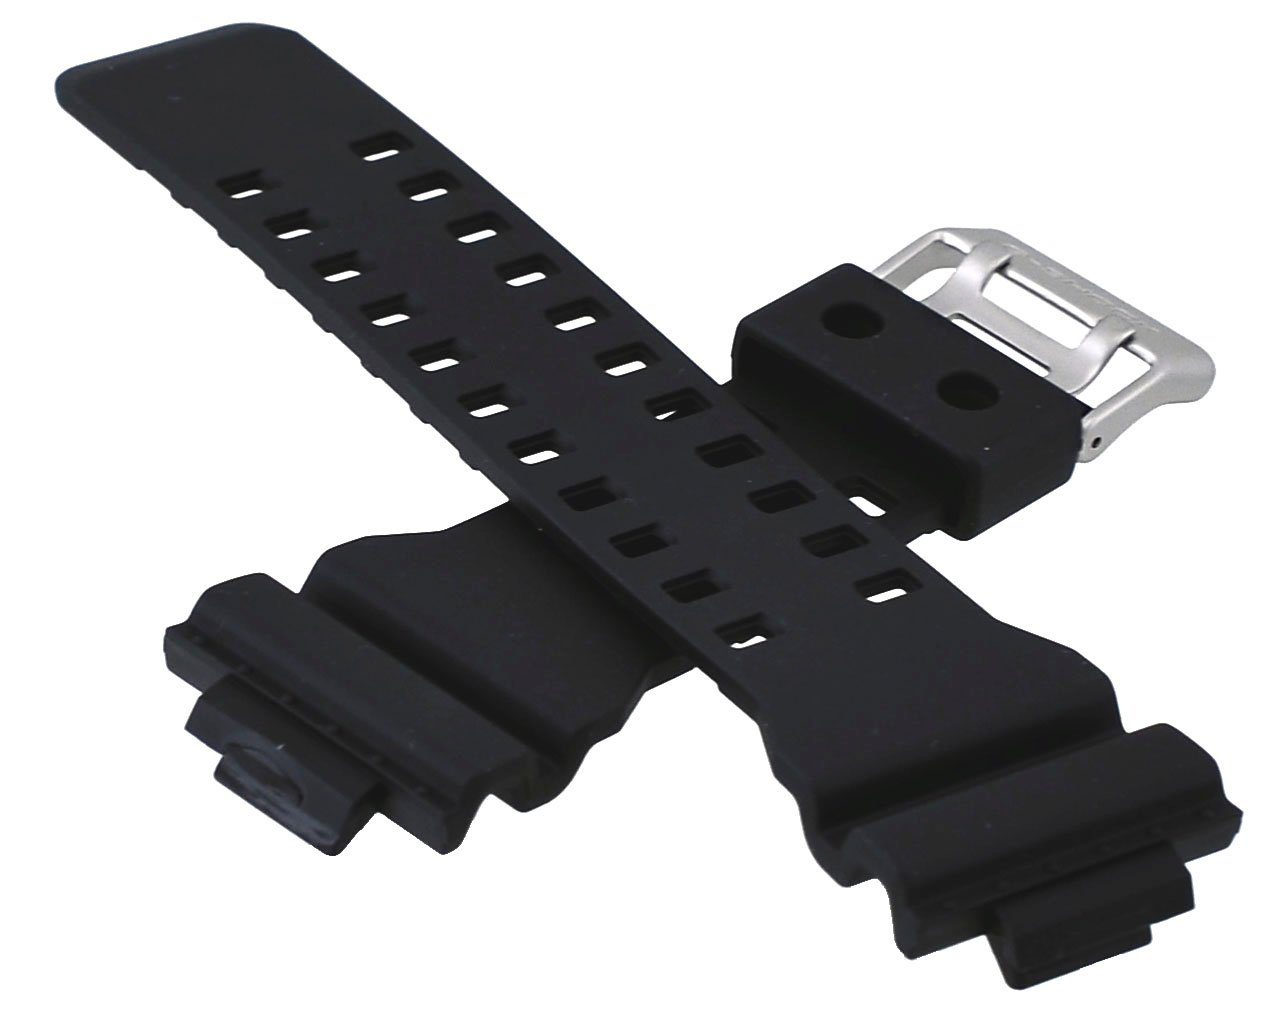 G Shock Battery Replacement For Casio Watches Ga 100 Jam Tangan 100a 9adr Mens Resin Watch Band Black